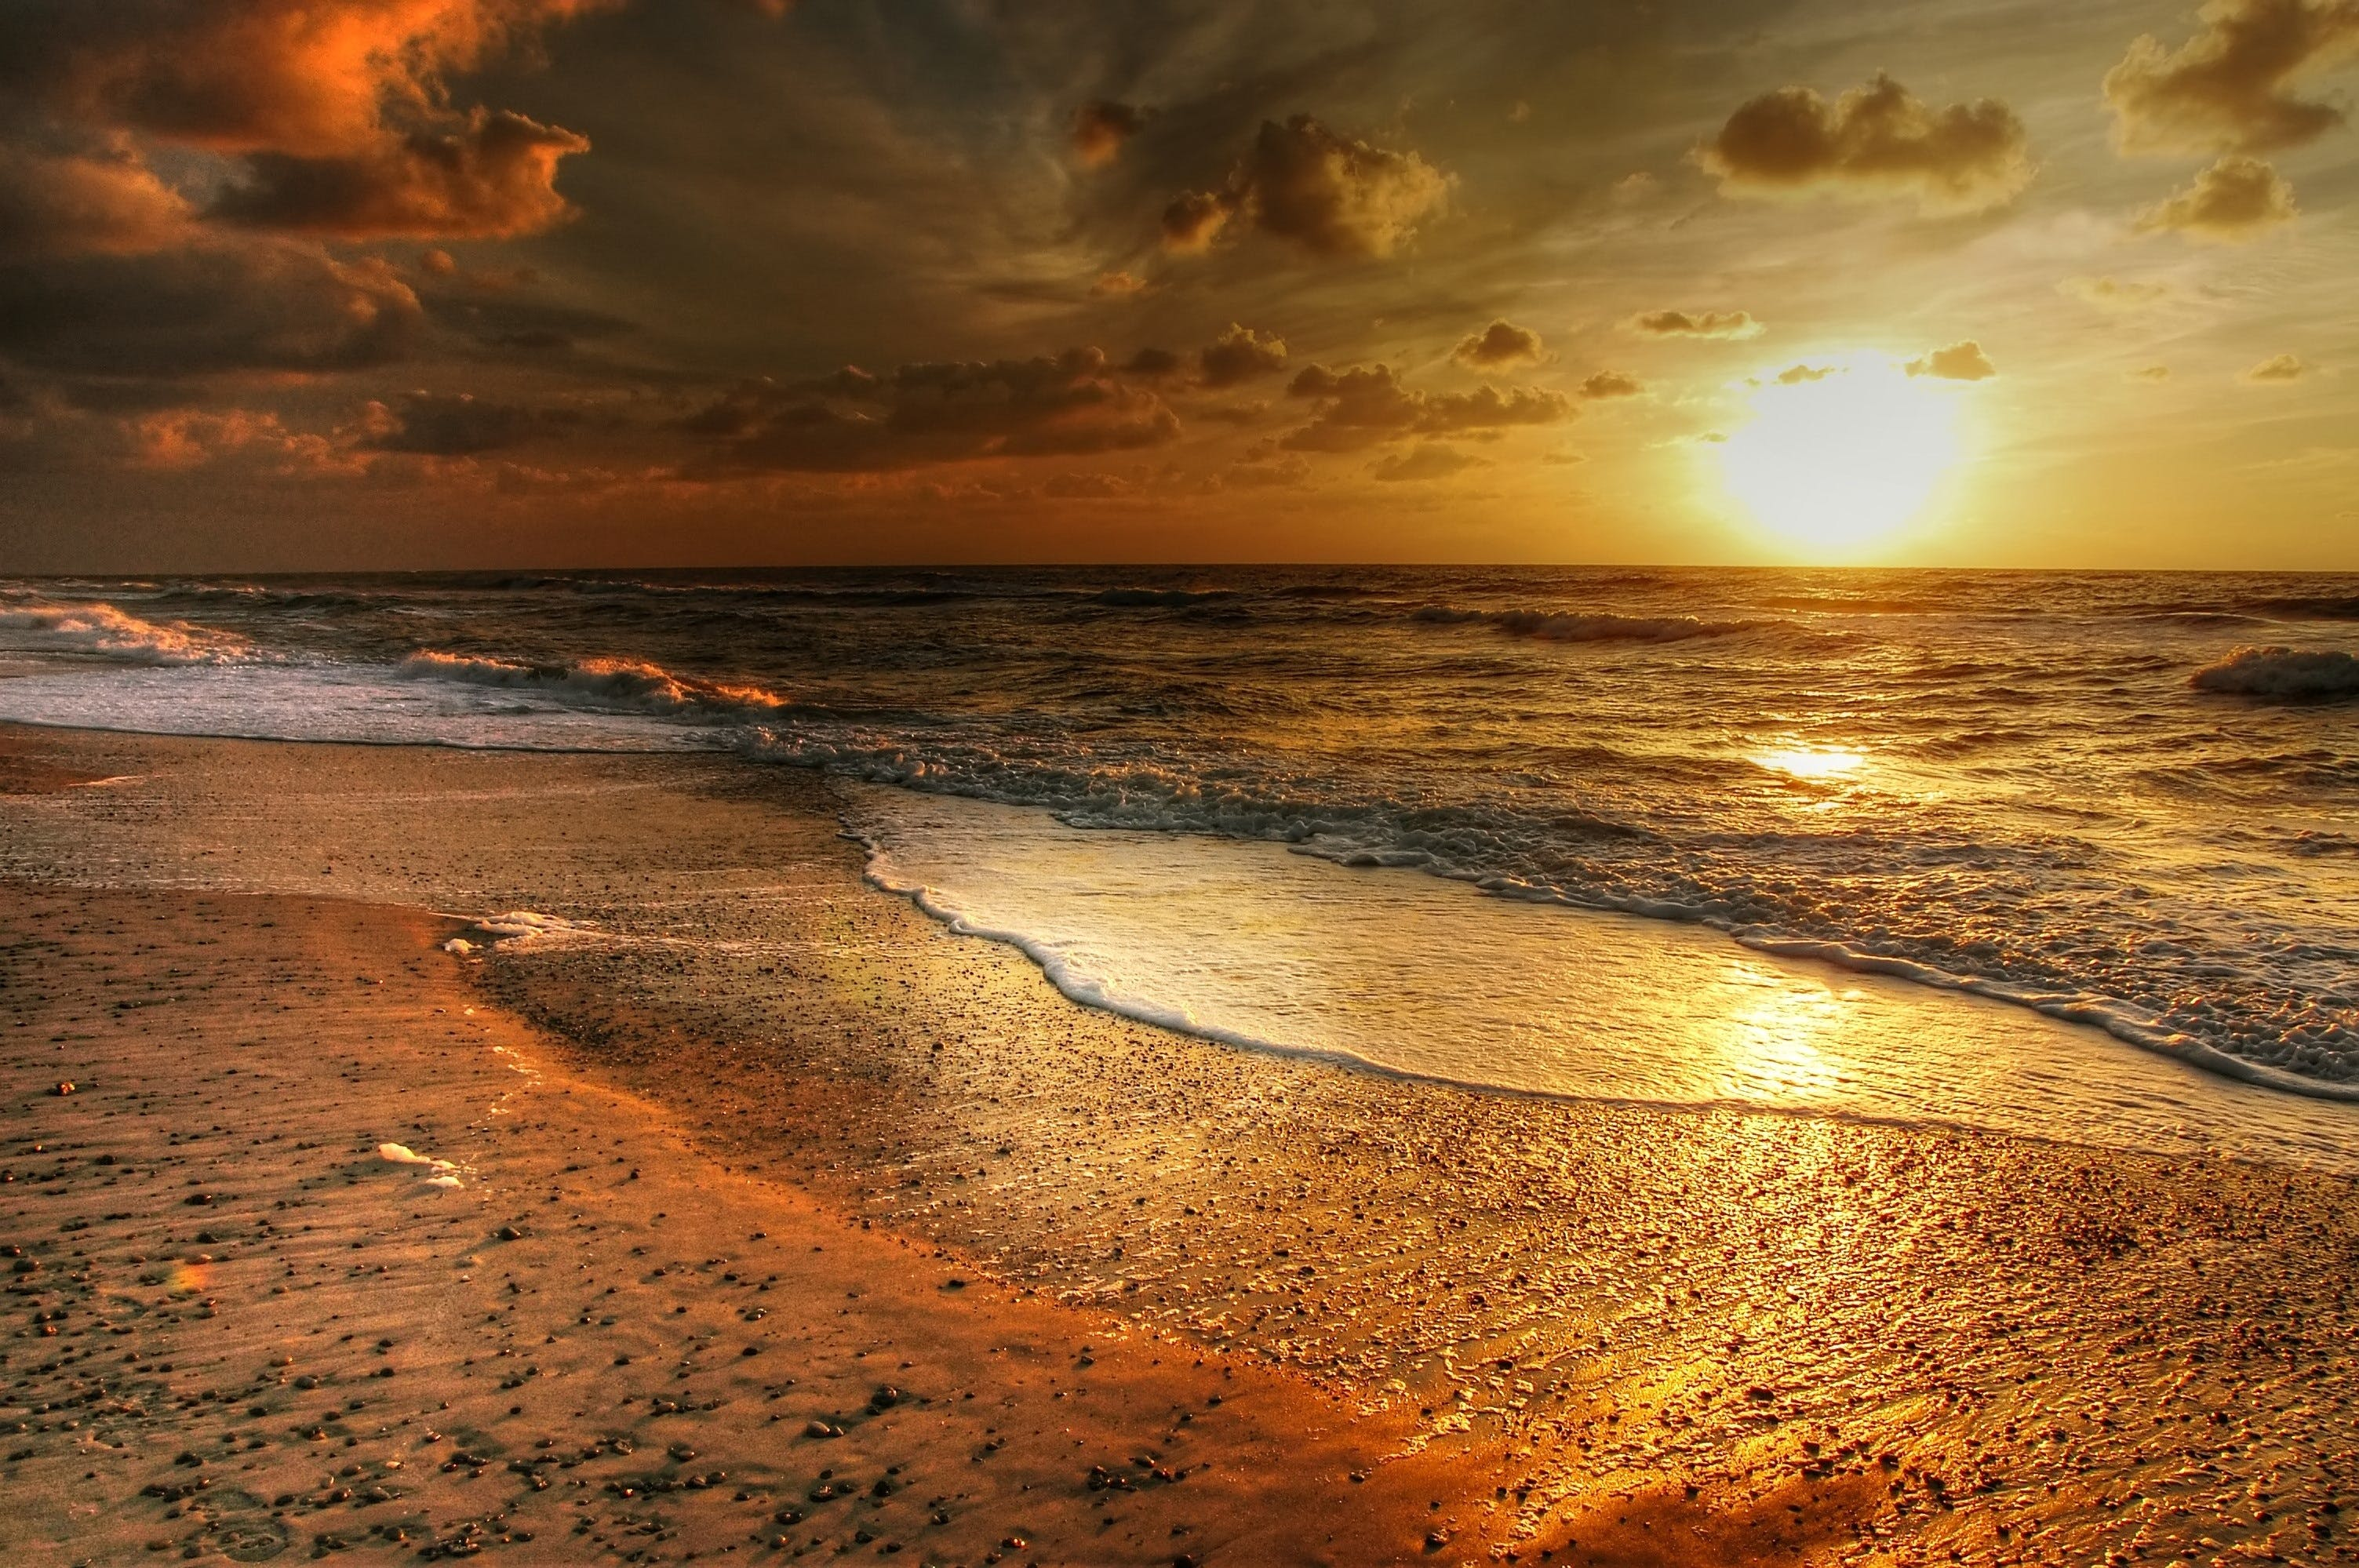 Golden Hour Photography of Seashore